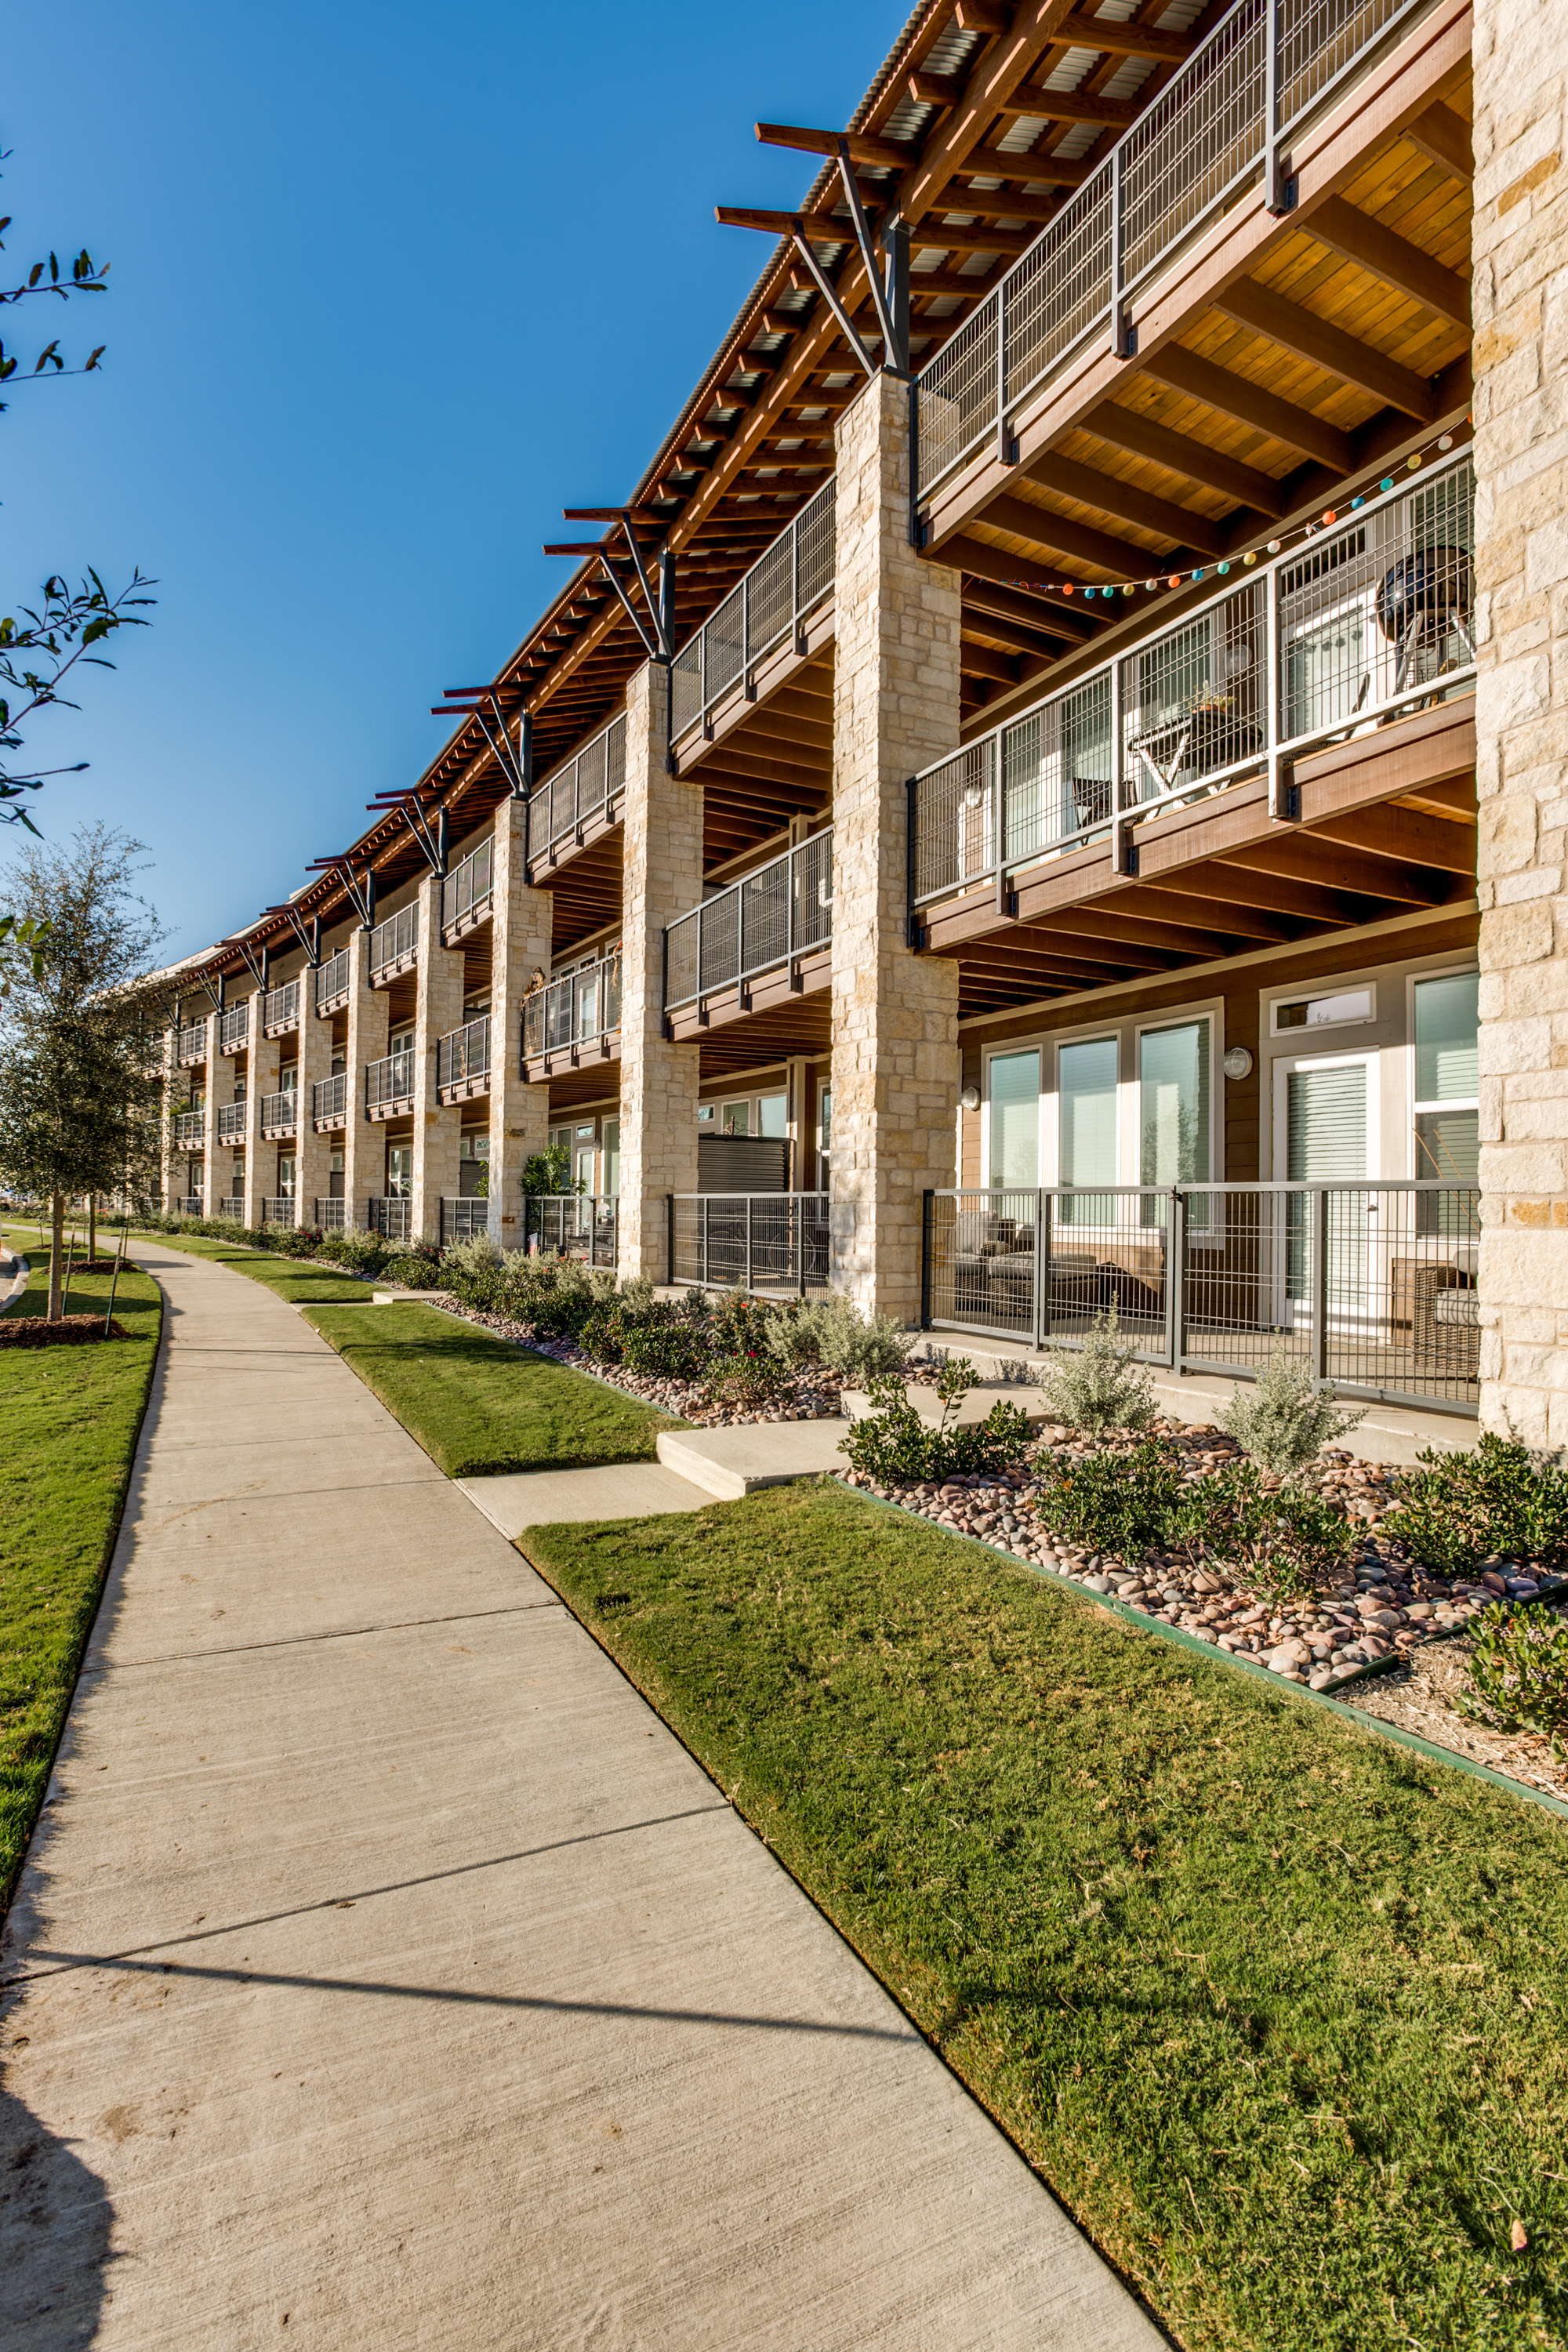 Apartments — A MASTER PLANNED COMMUNITY